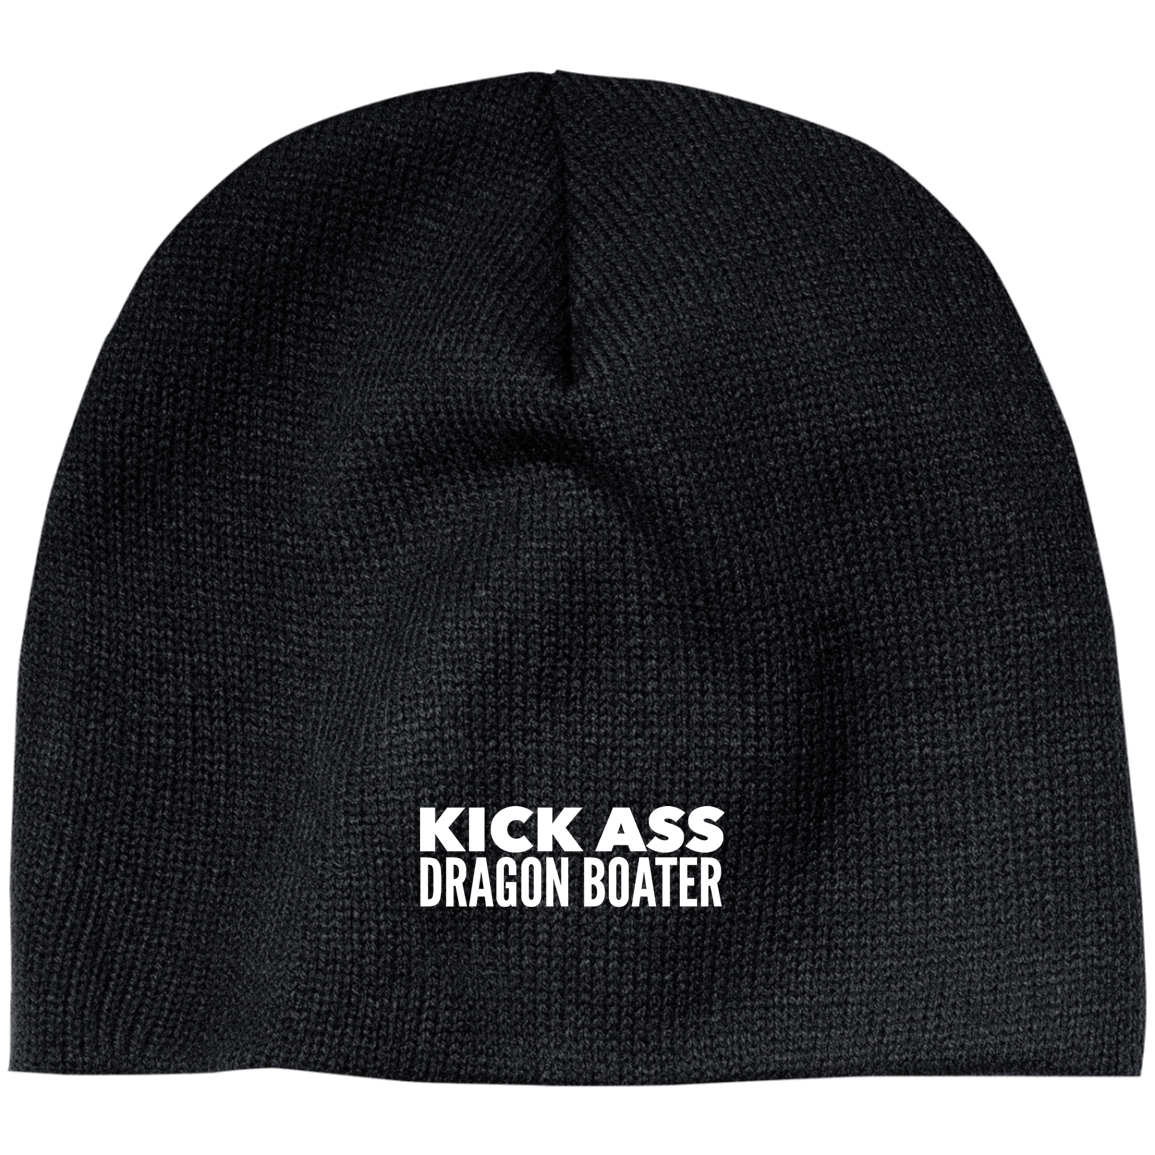 KickAss Dragon Boater 100% Acrylic Beanie